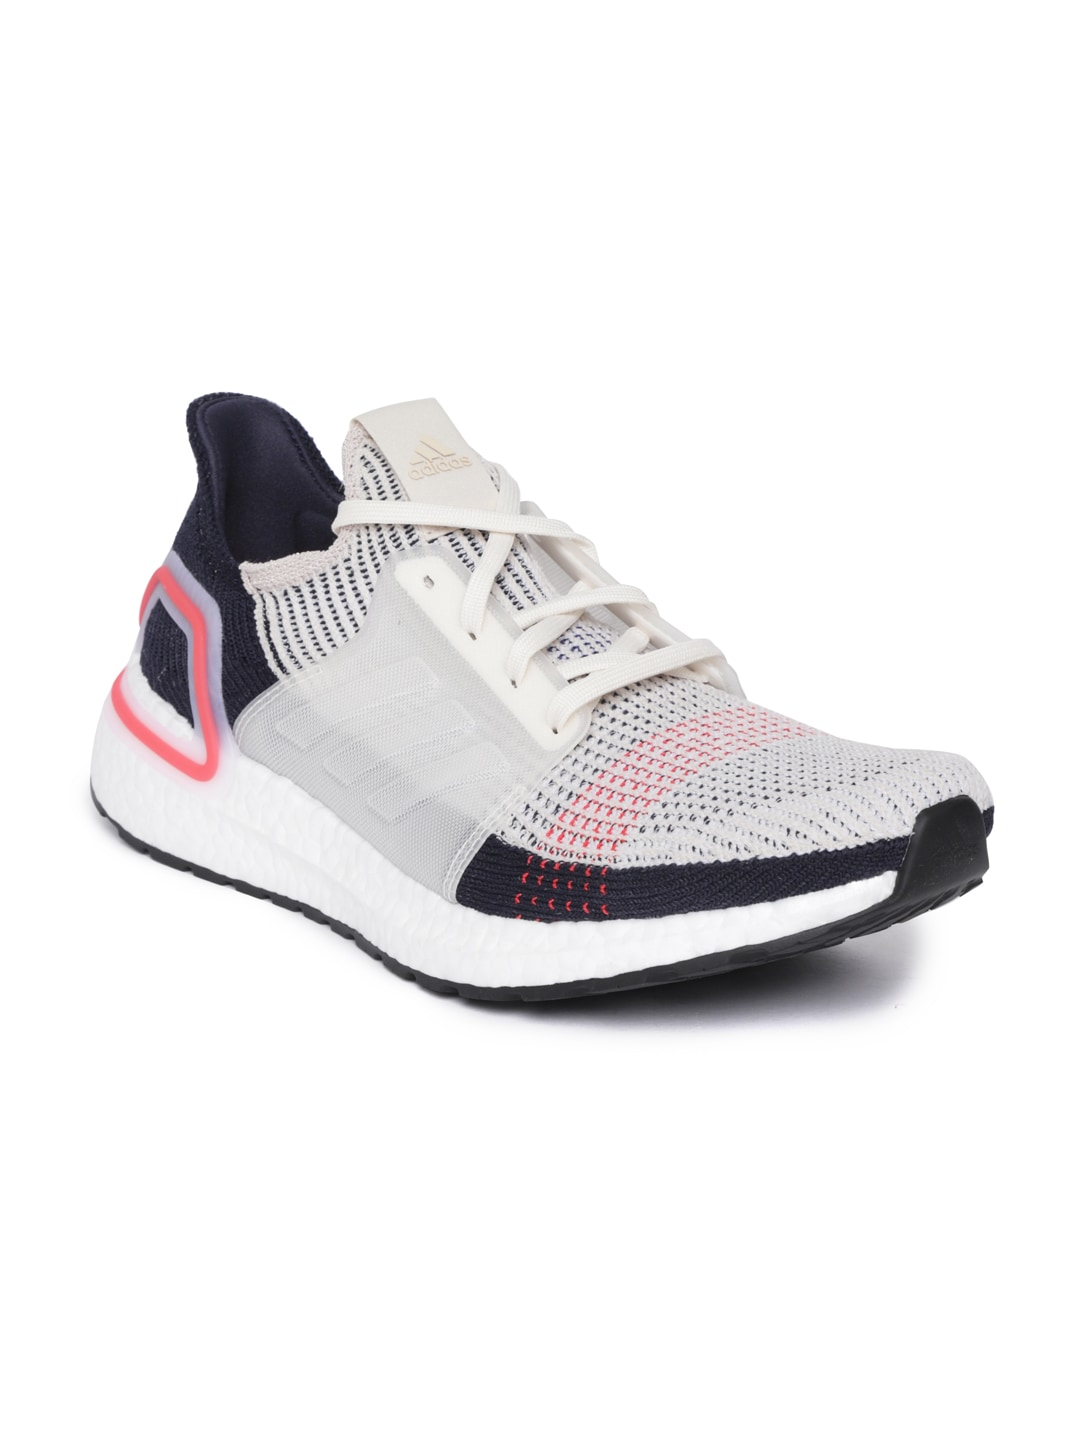 78ea81ab9 Adidas Shoes - Buy Adidas Shoes for Men   Women Online - Myntra